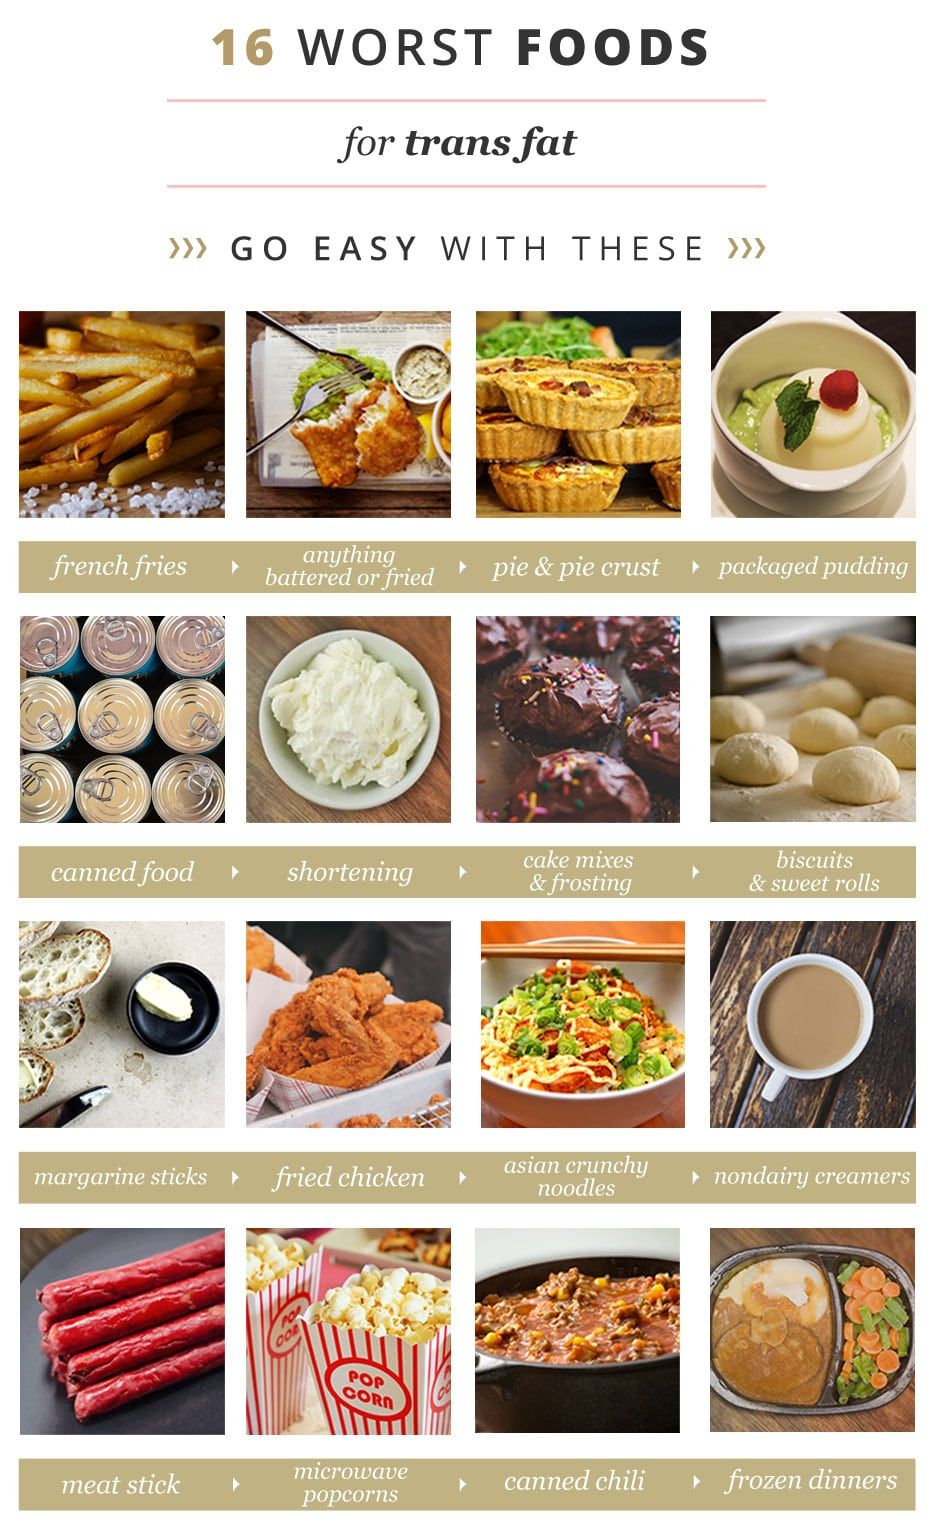 How to Start a Healthy Lifestyle - Worst Foods for Trans Fat